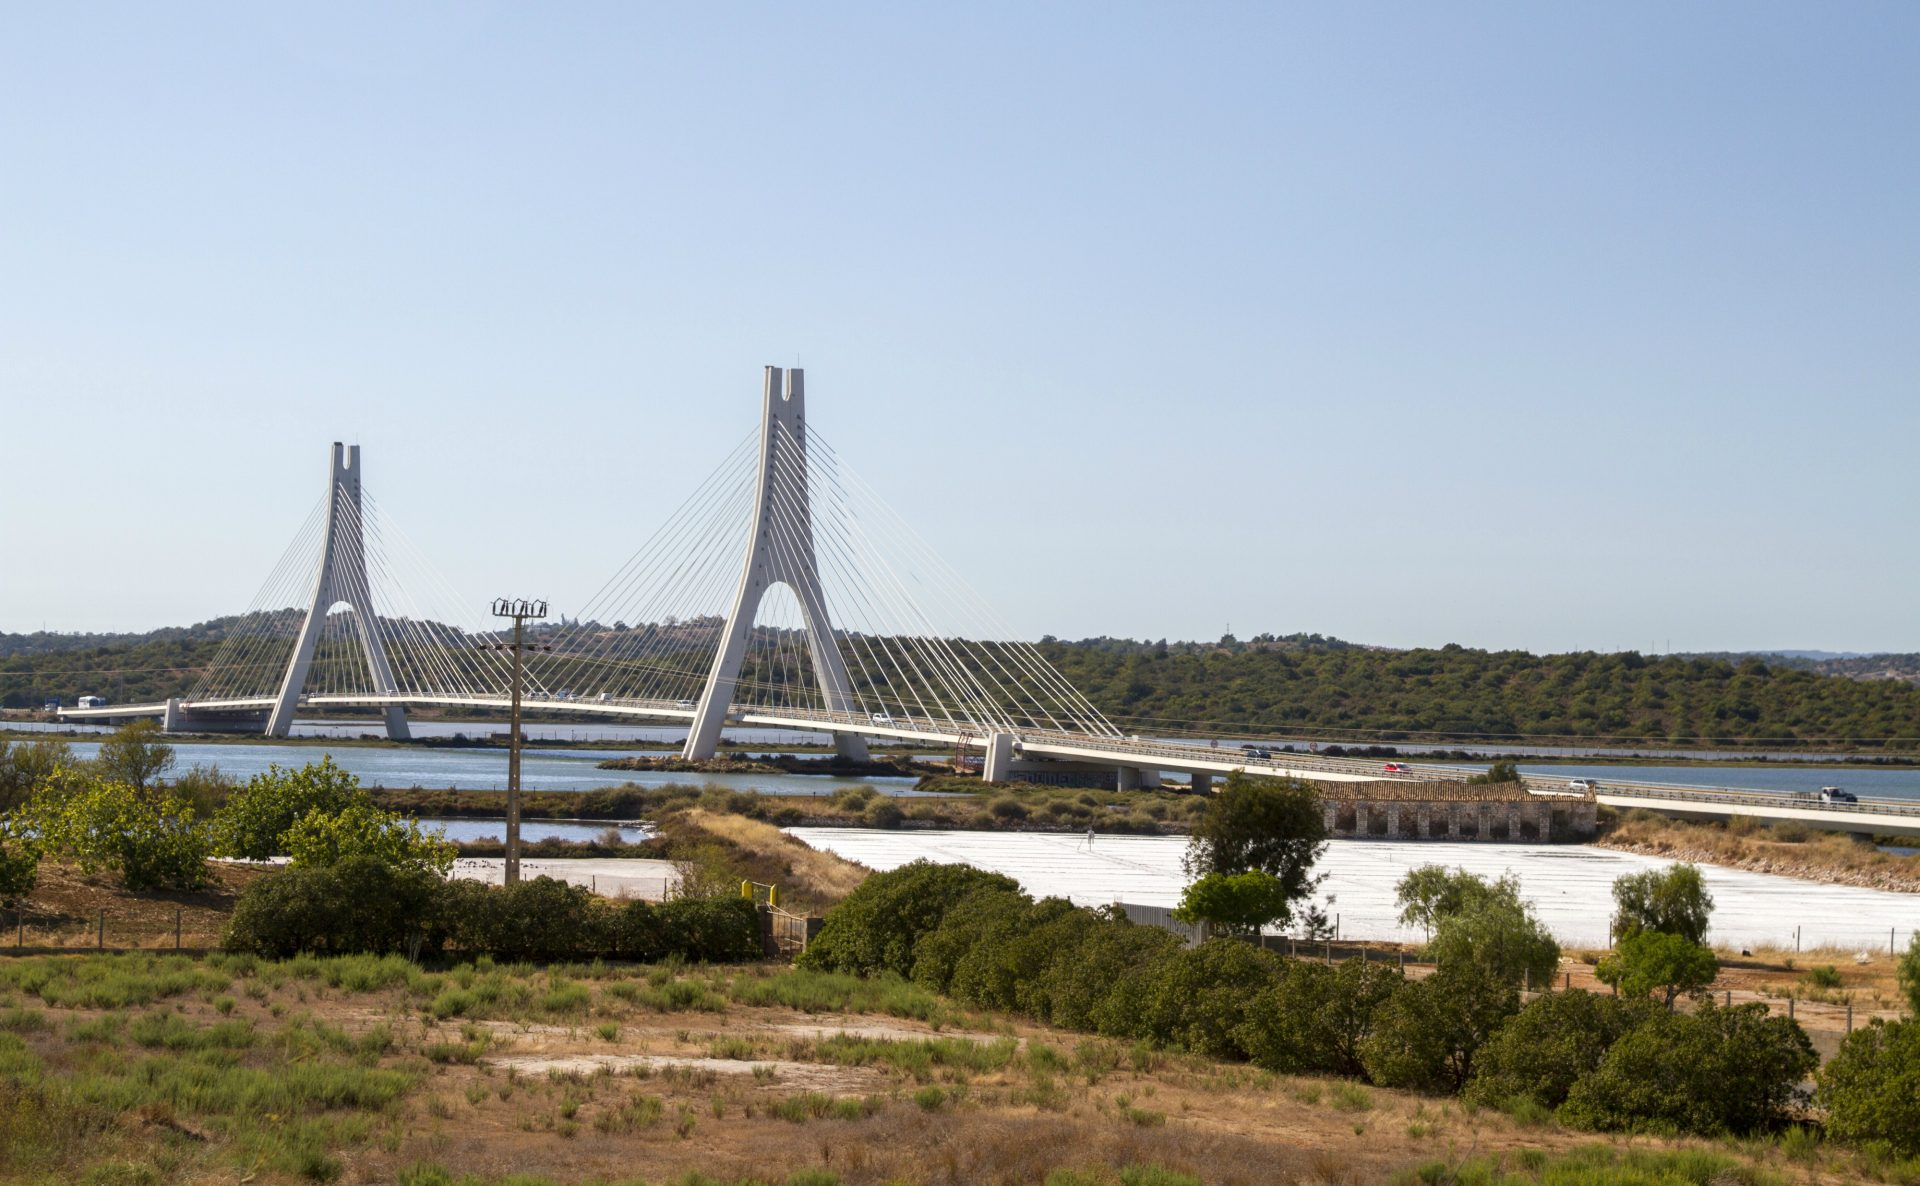 Portugal-Posts-Algarve-Towns-Bridge-River-Arade